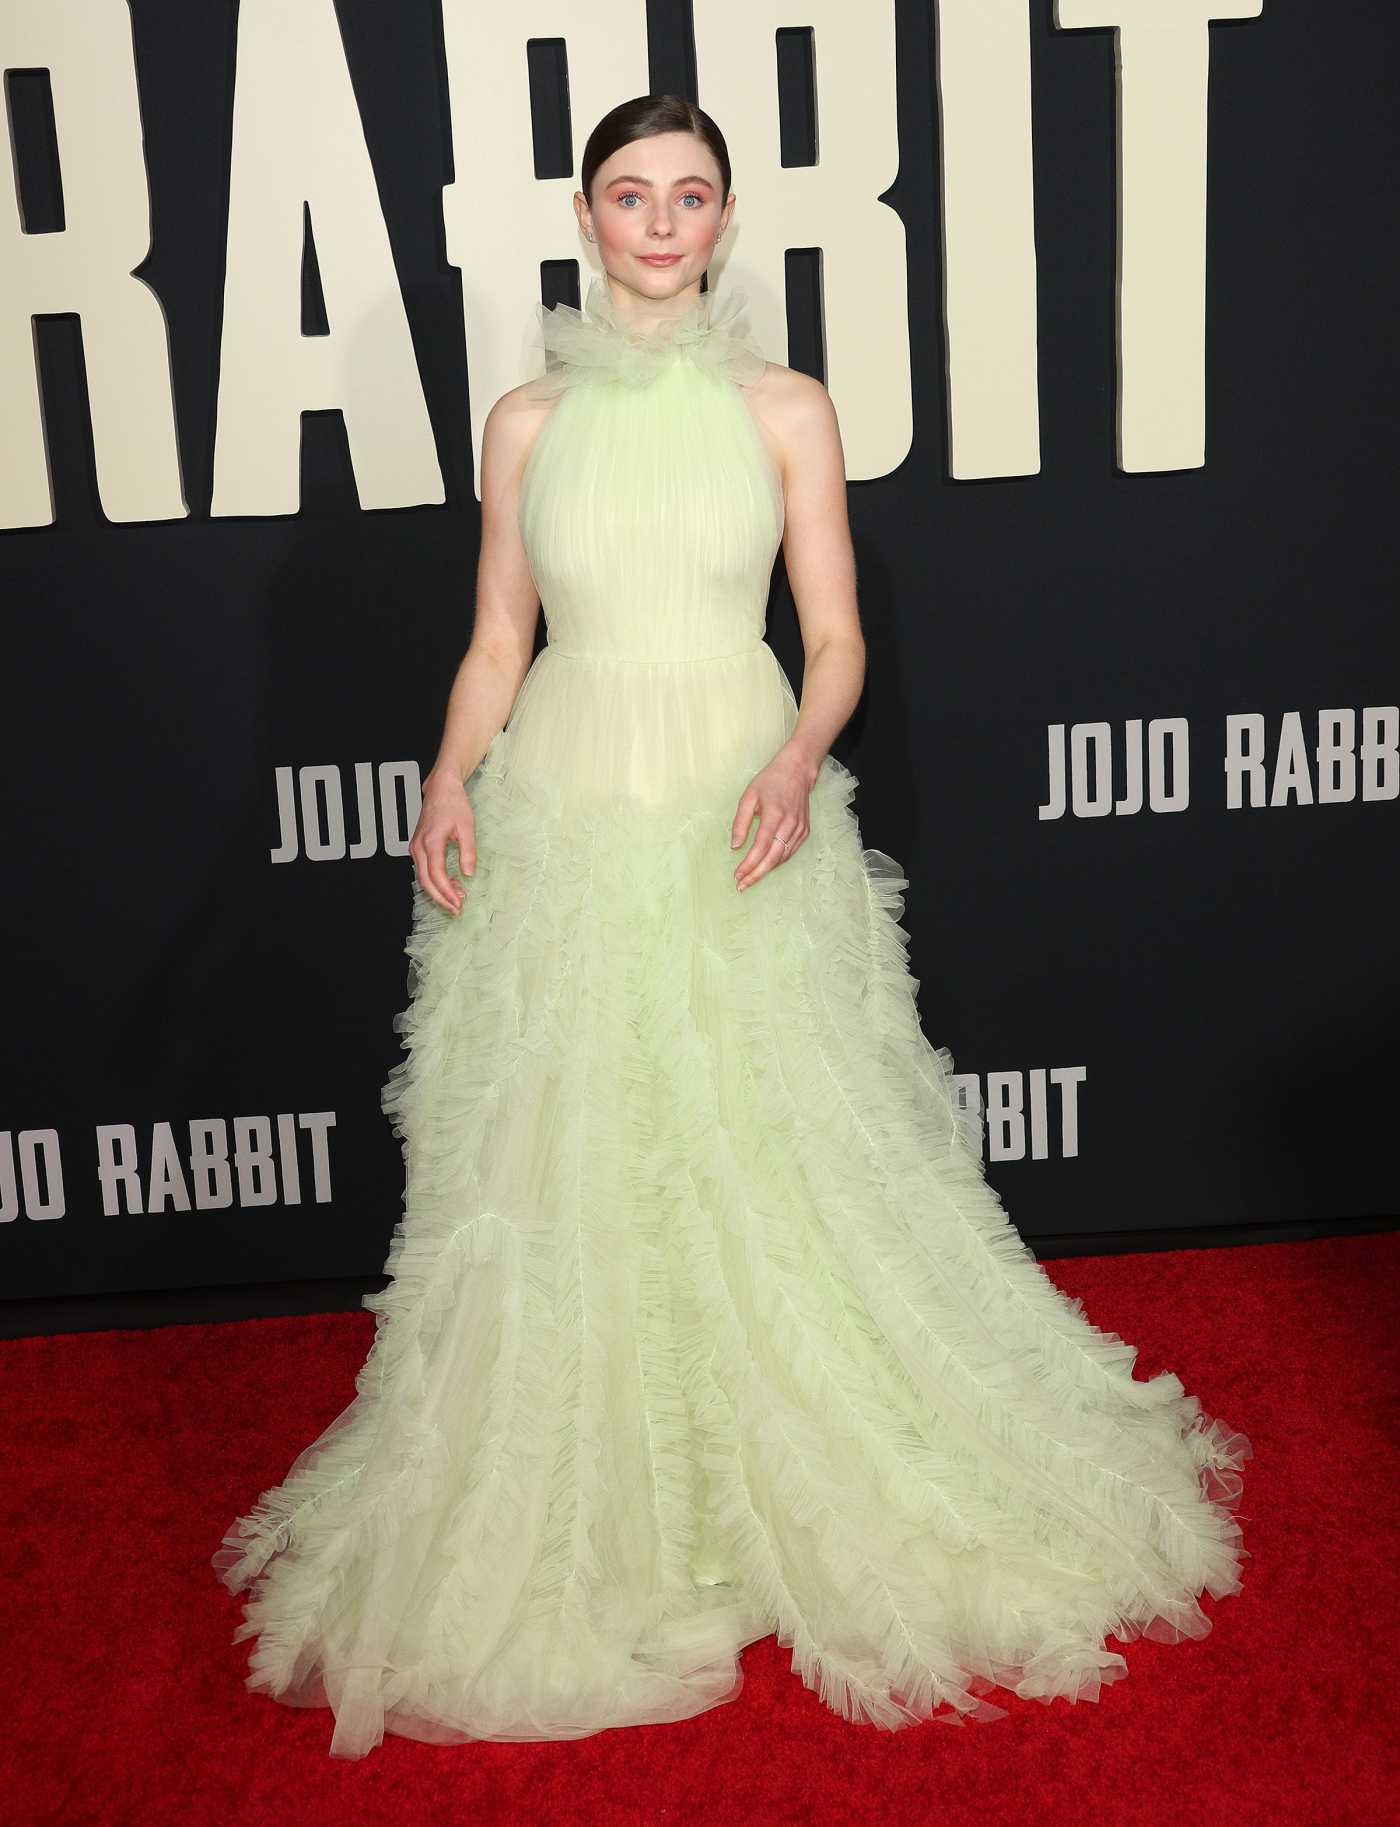 Thomasin McKenzie Attends Jojo Rabbit Premiere in Los Angeles 10/15/2019